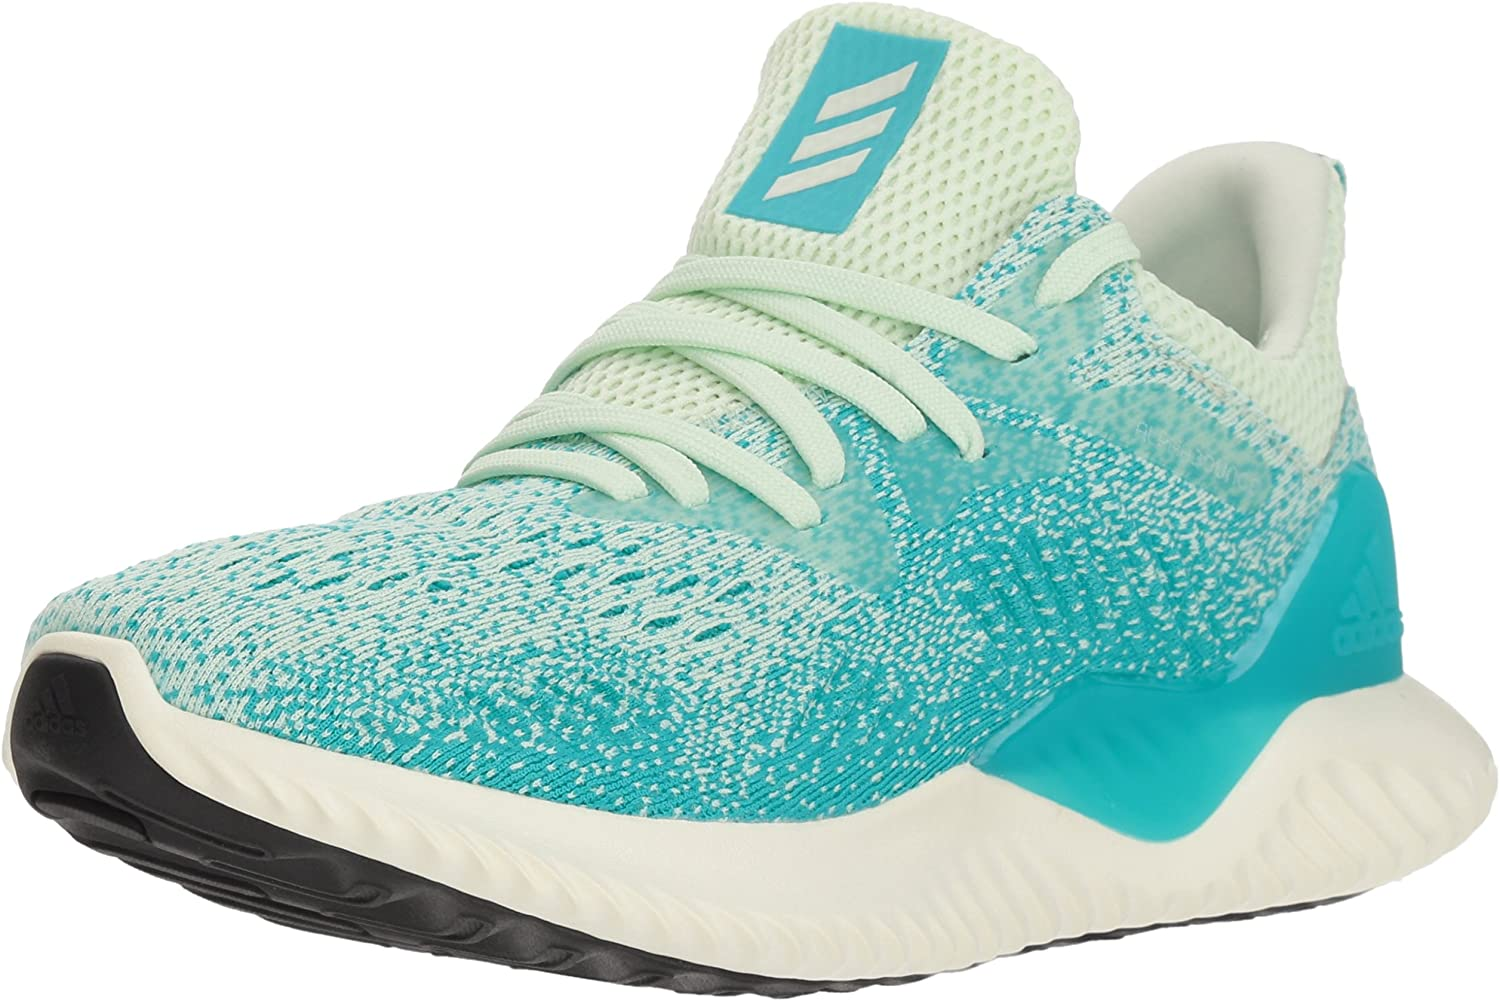 Adidas Womens Alphabounce Beyond Running shoes Running shoes